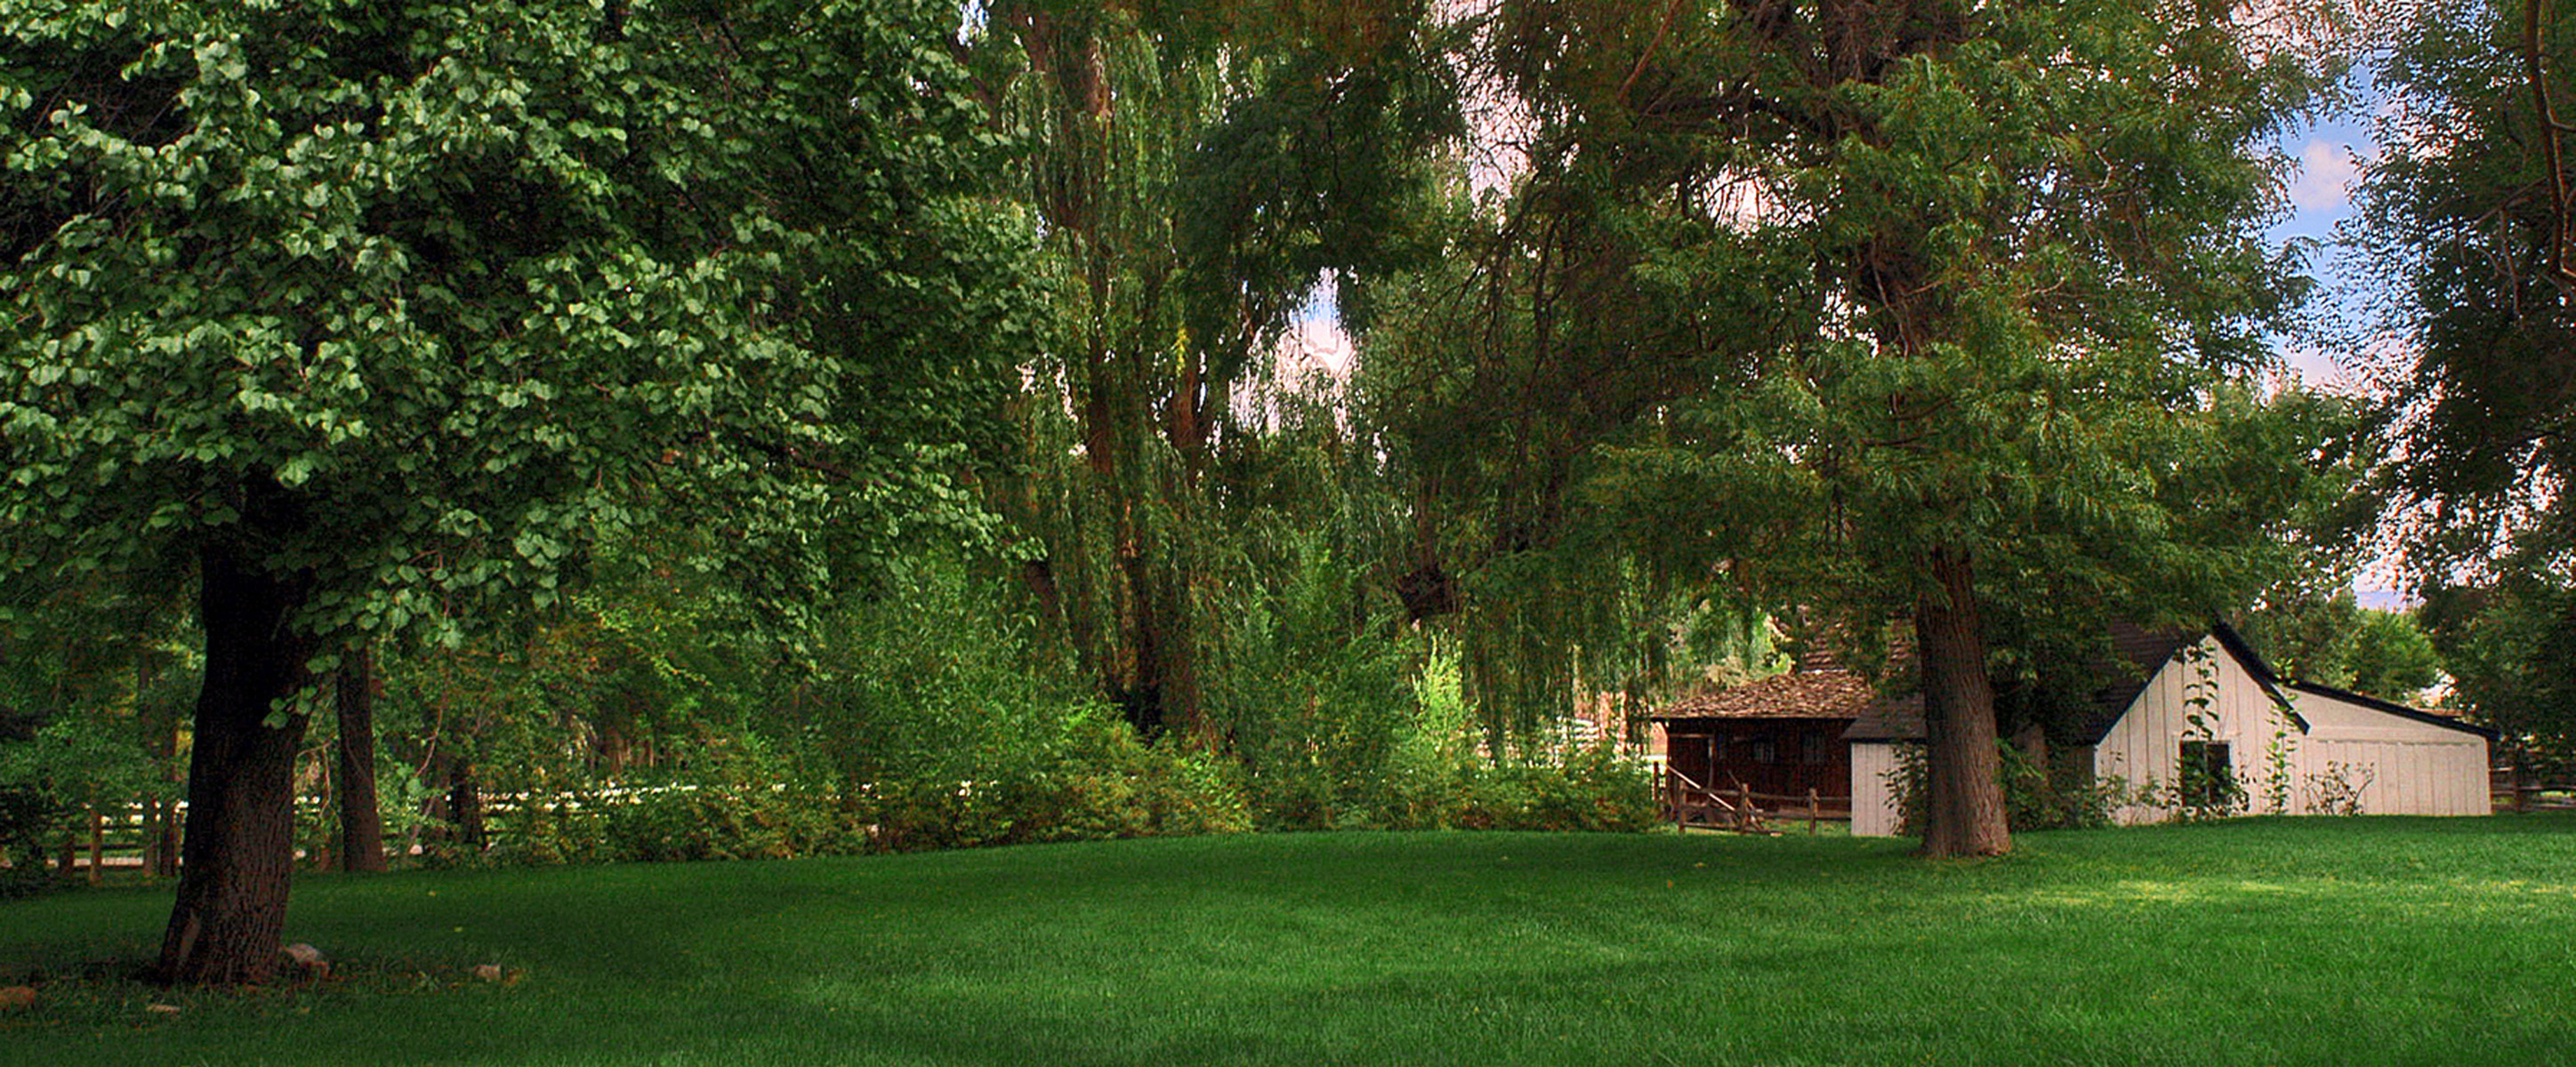 Weddings, Pond, Willow, Willow pond bed breakfast, Grounds